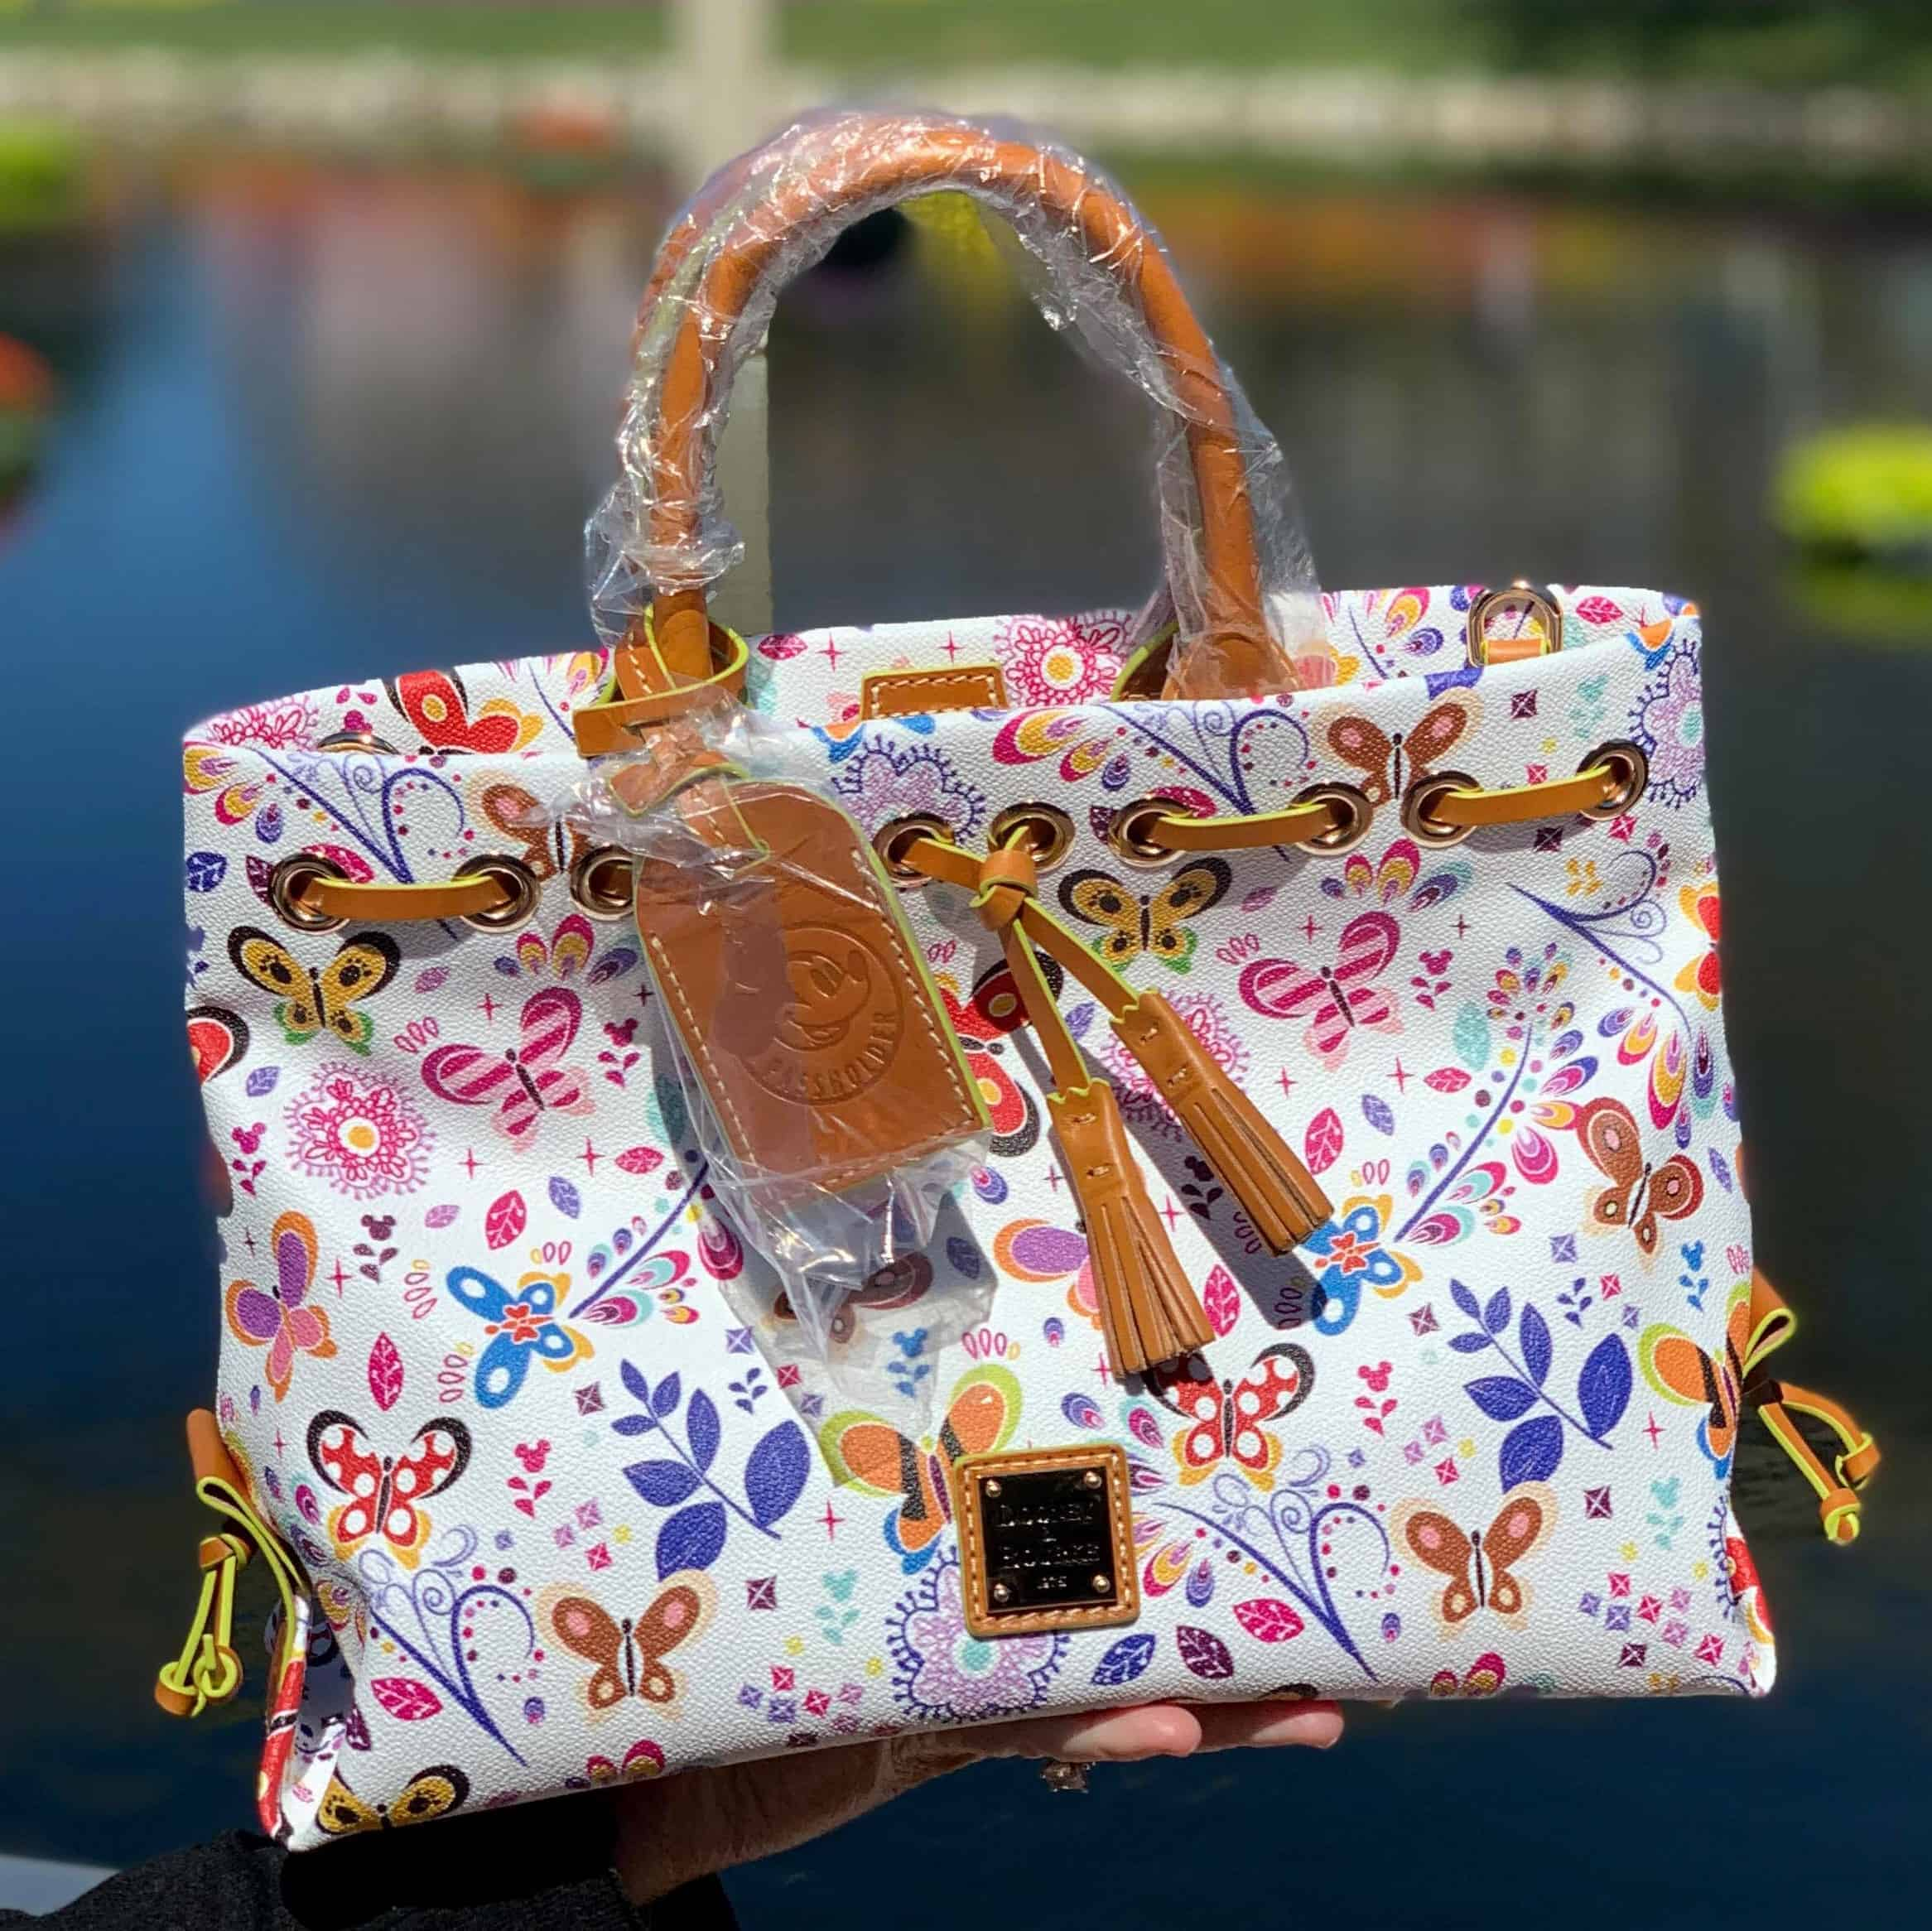 #7 - Flower and Garden Festival 2019 by Disney Dooney & Bourke